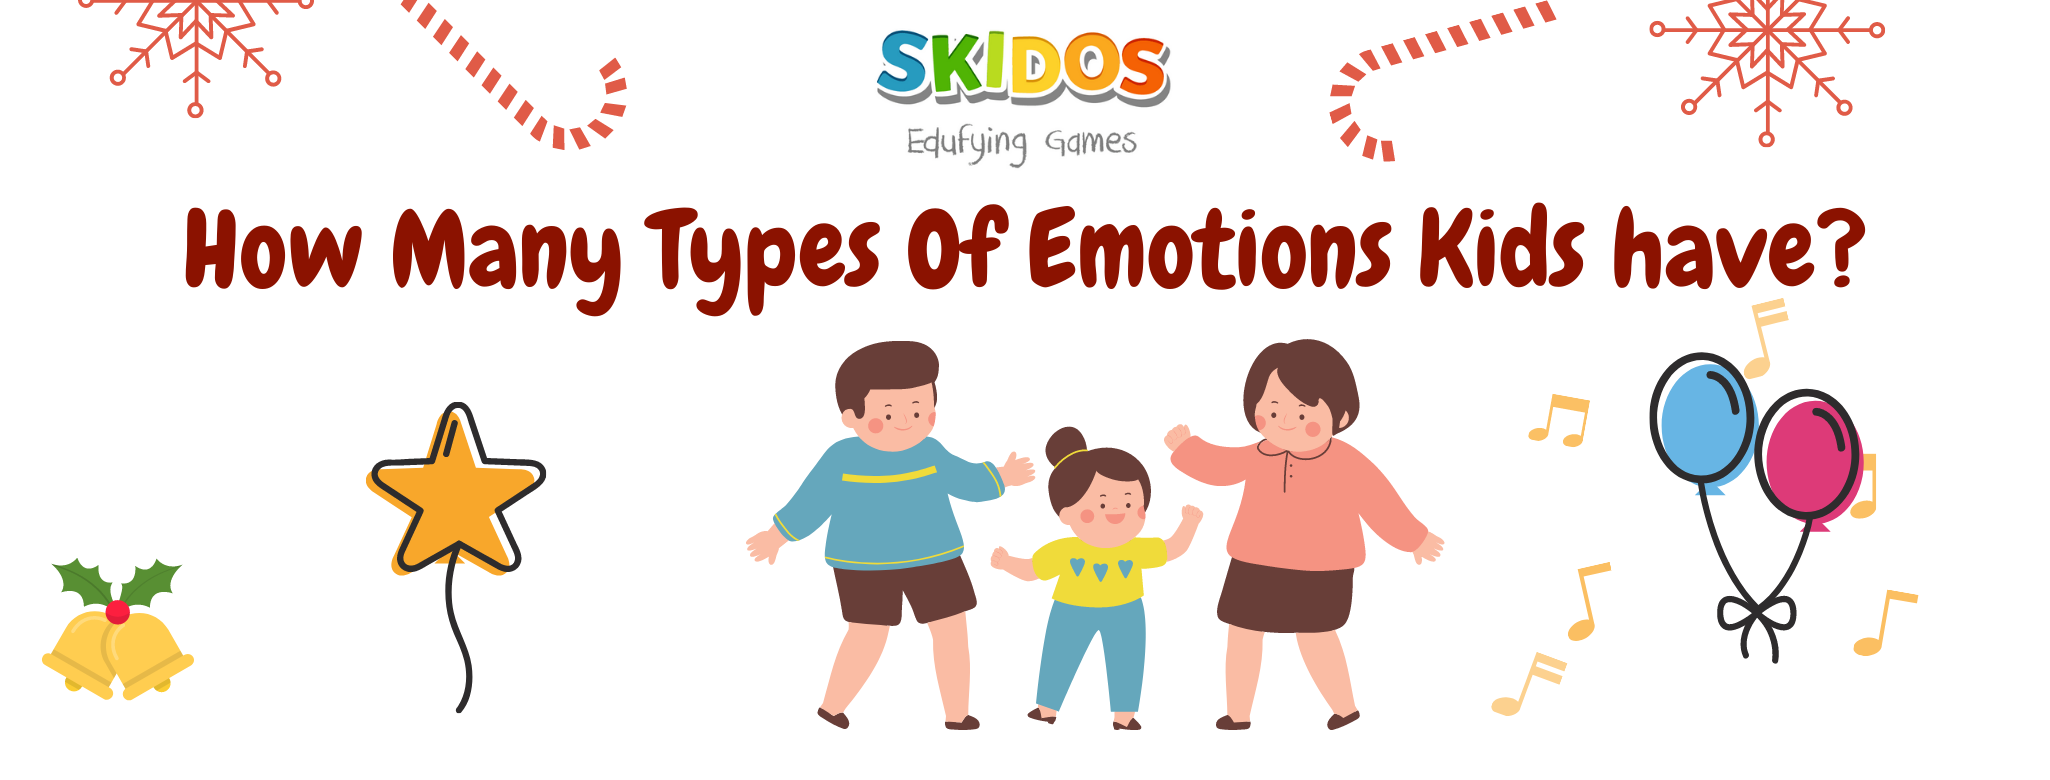 How Many Types Of Emotions Kids have